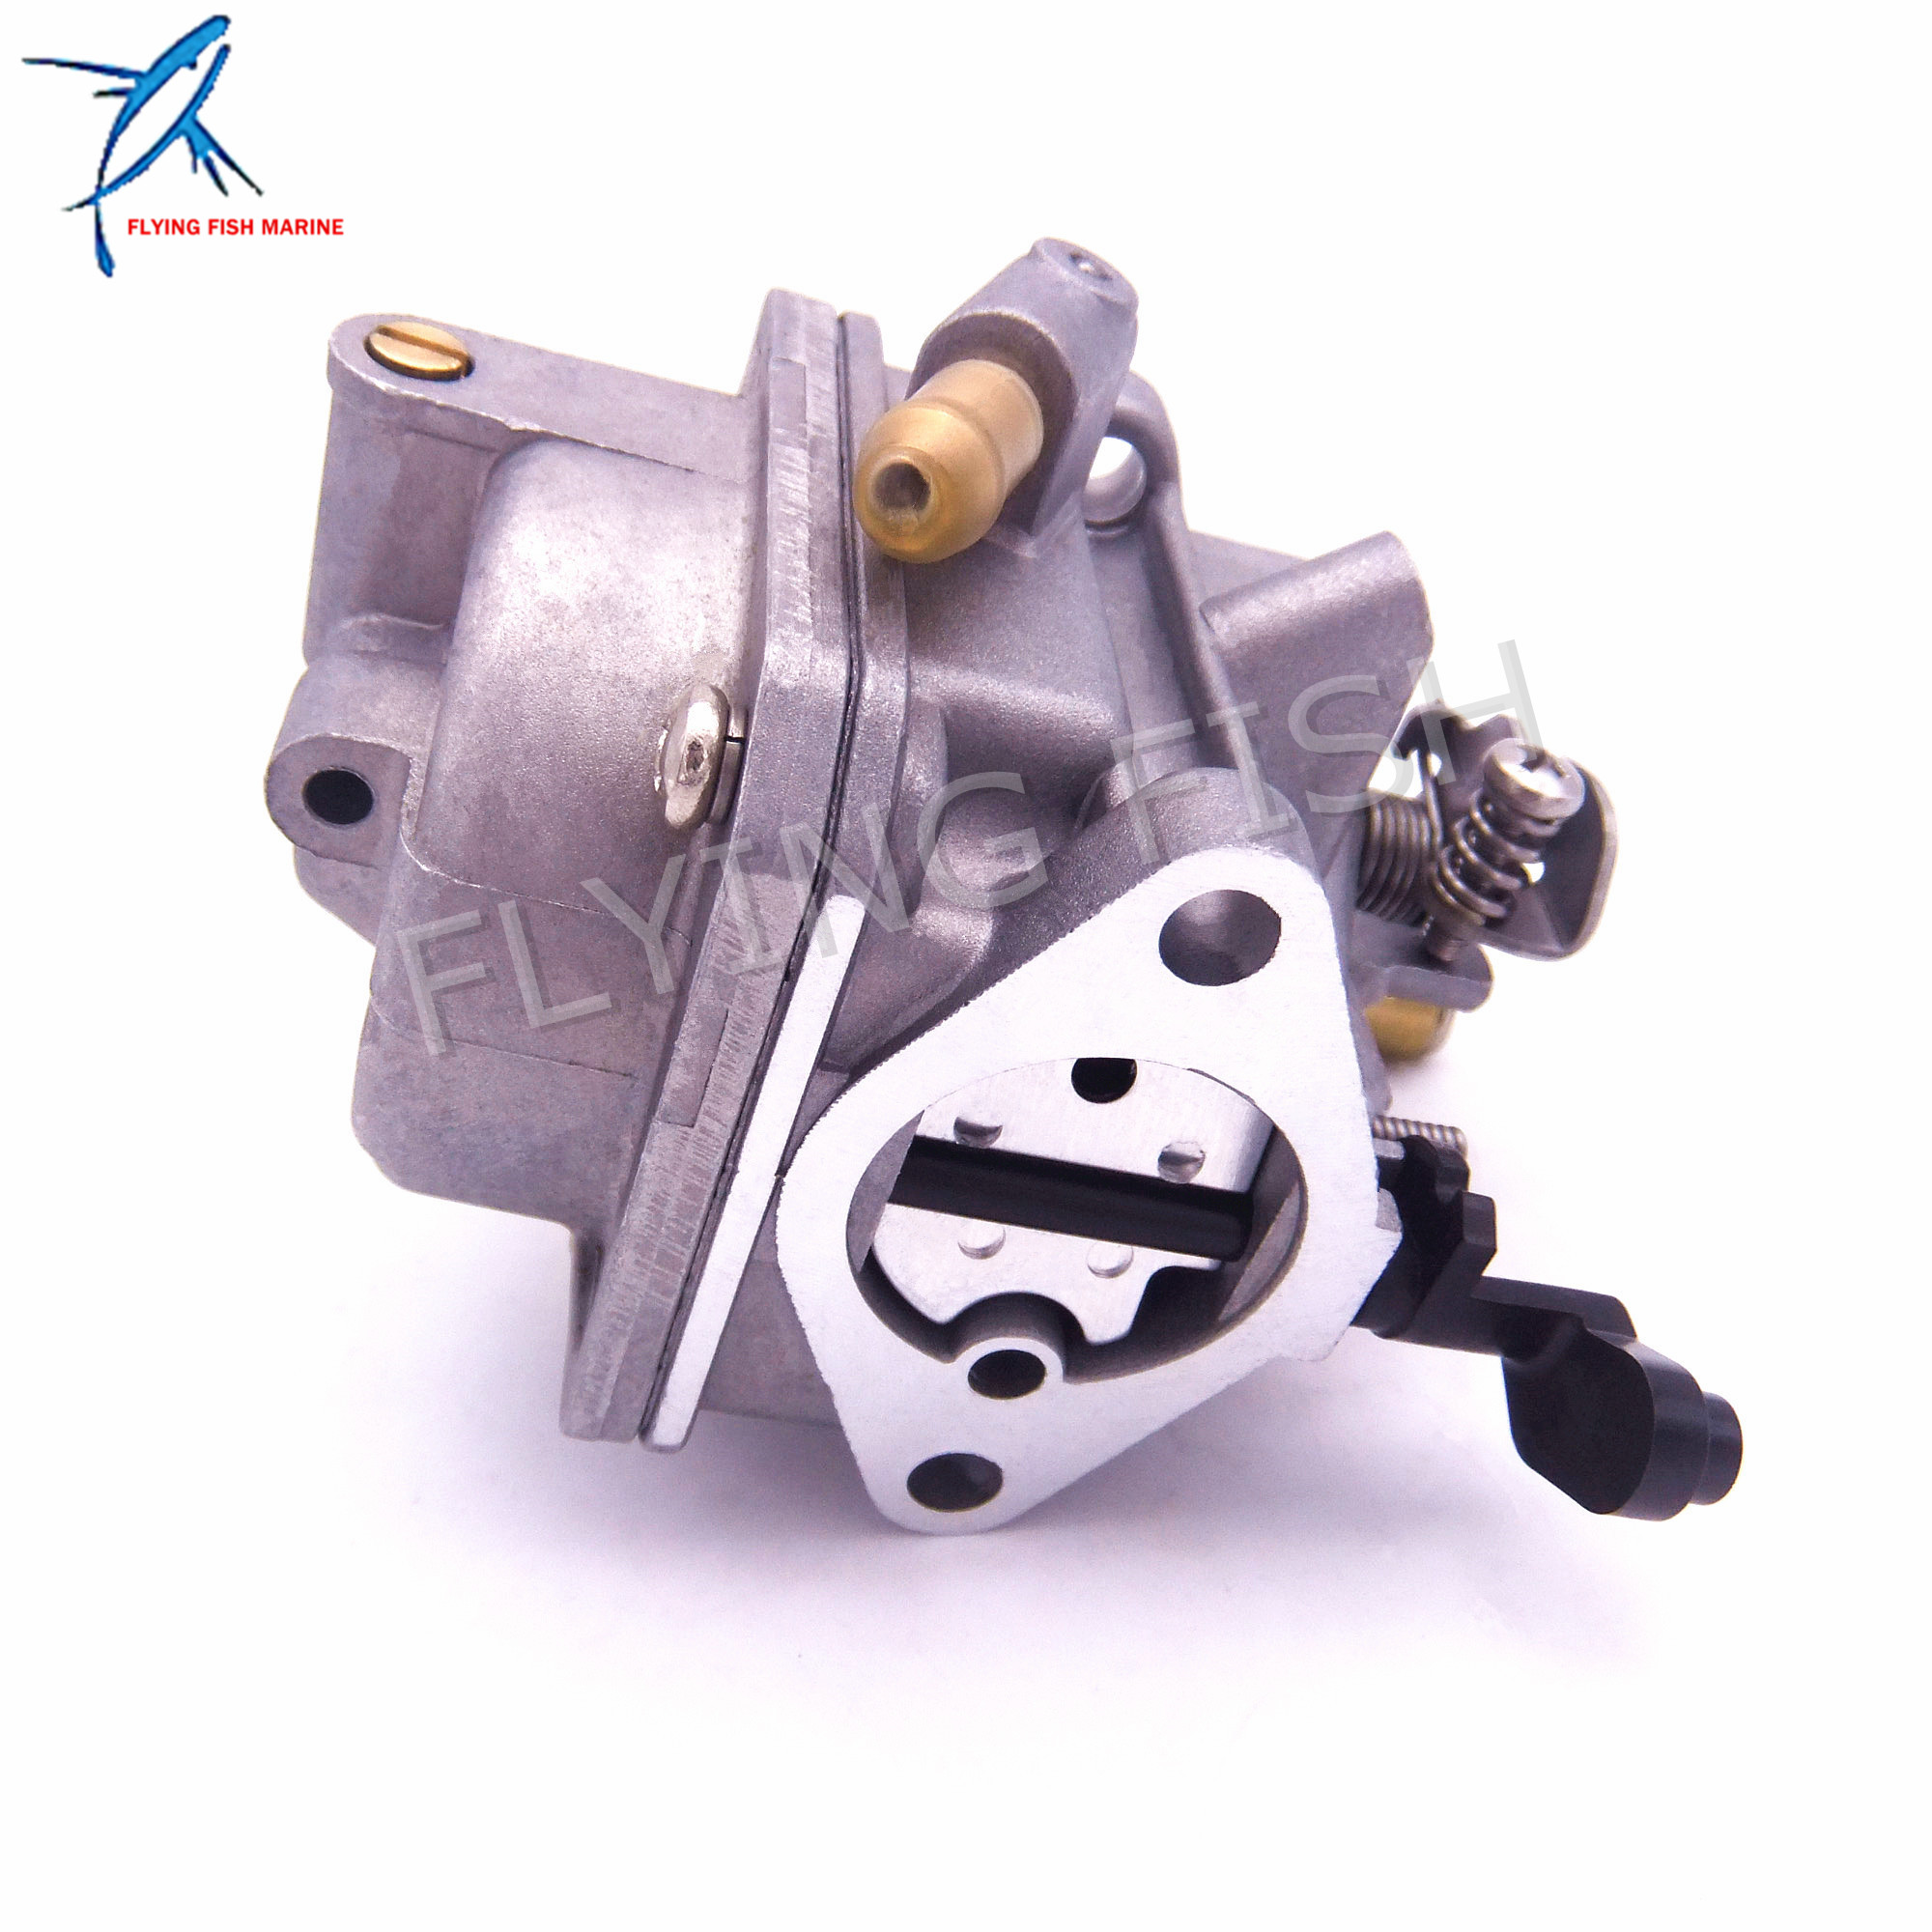 Outboard Engine Carburetor Assy 6BX-14301-10 6BX-14301-11 6BX-14301-00 for Yamaha 4-stroke F6 Boat Motor Free Shipping fit yamaha outboard 61n 45510 00 00 drive shaft assy 61n 45510